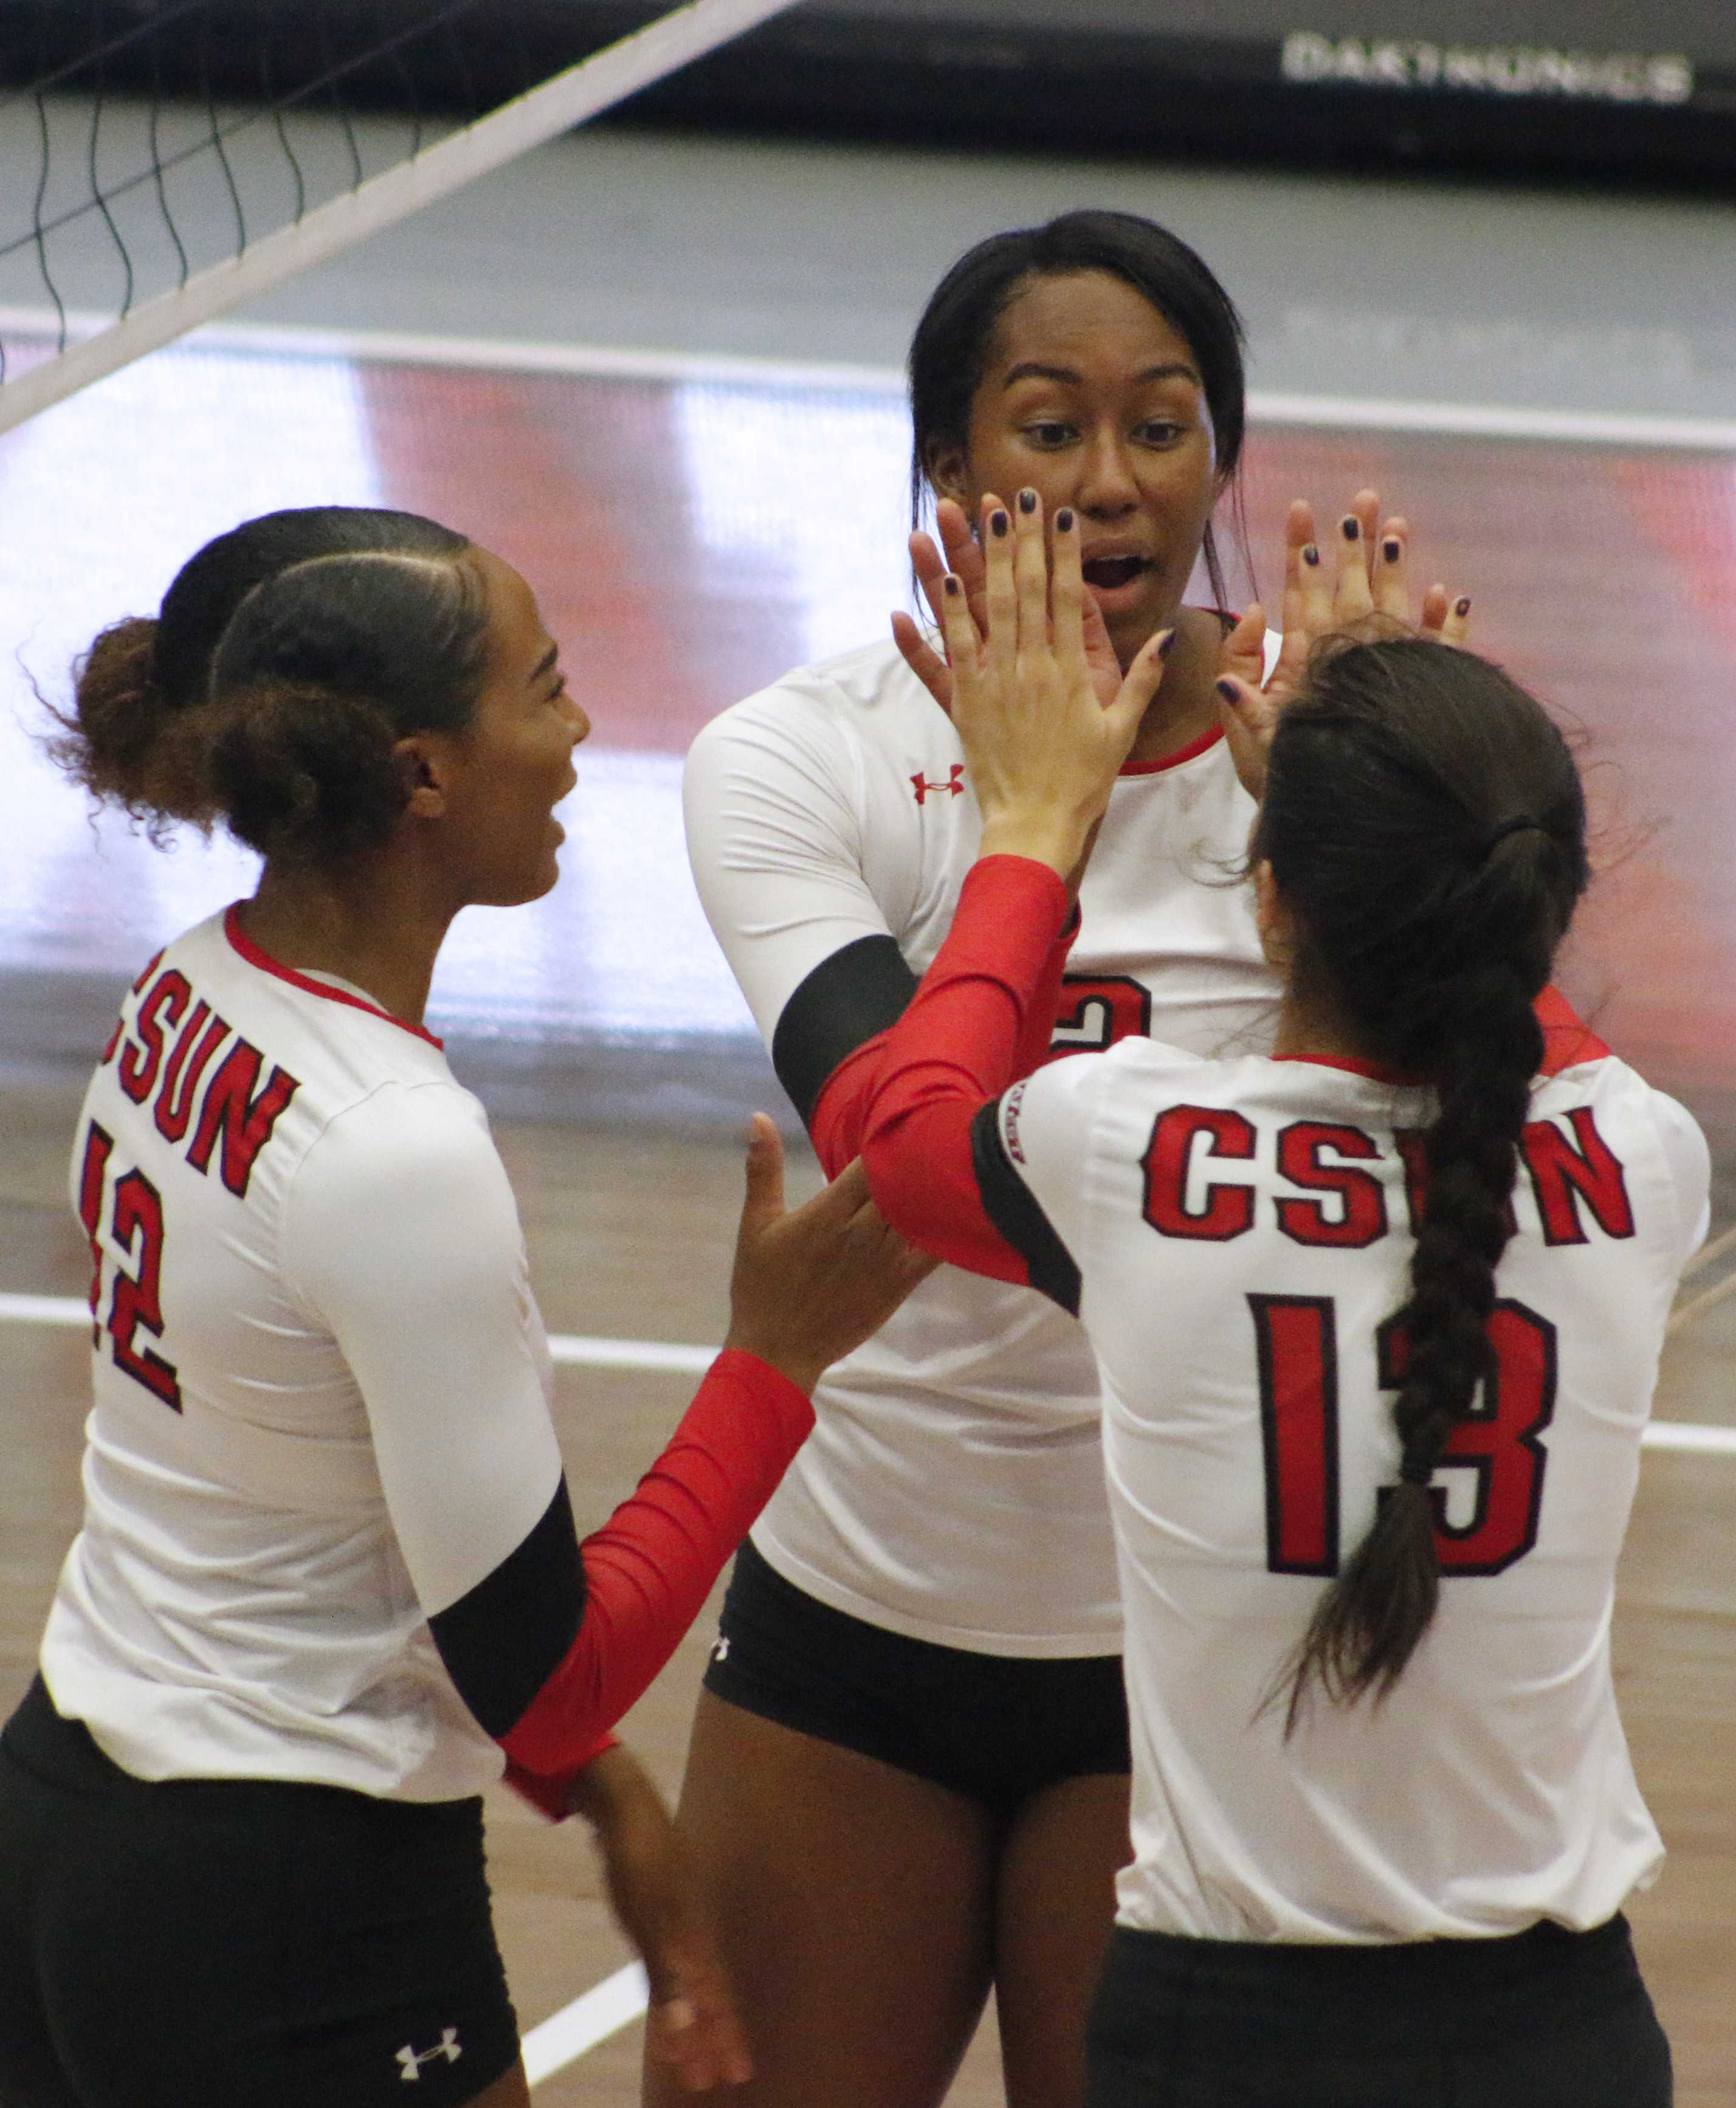 (Left to right) Brianna Johnson, Aeryn Owens and Nicole Nevarez celebrate after a point. Photo credit: Clare Calzada